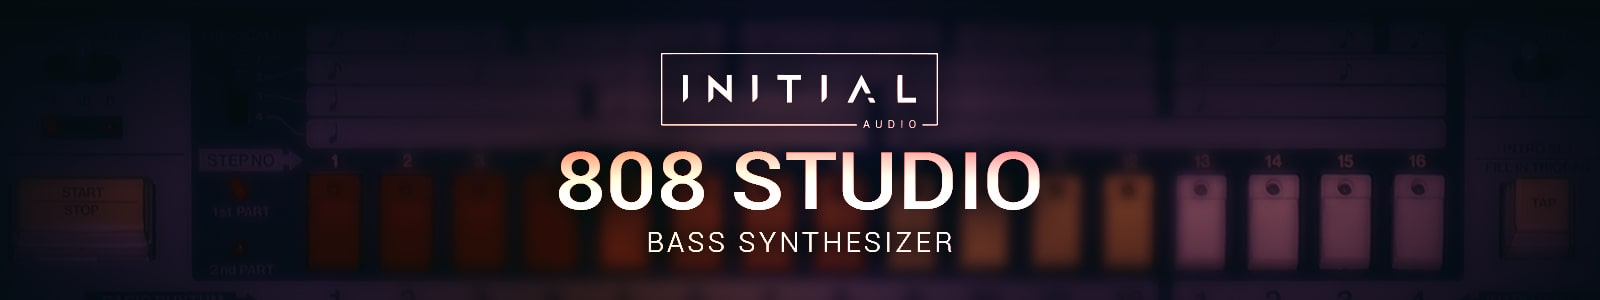 inital audio sektor